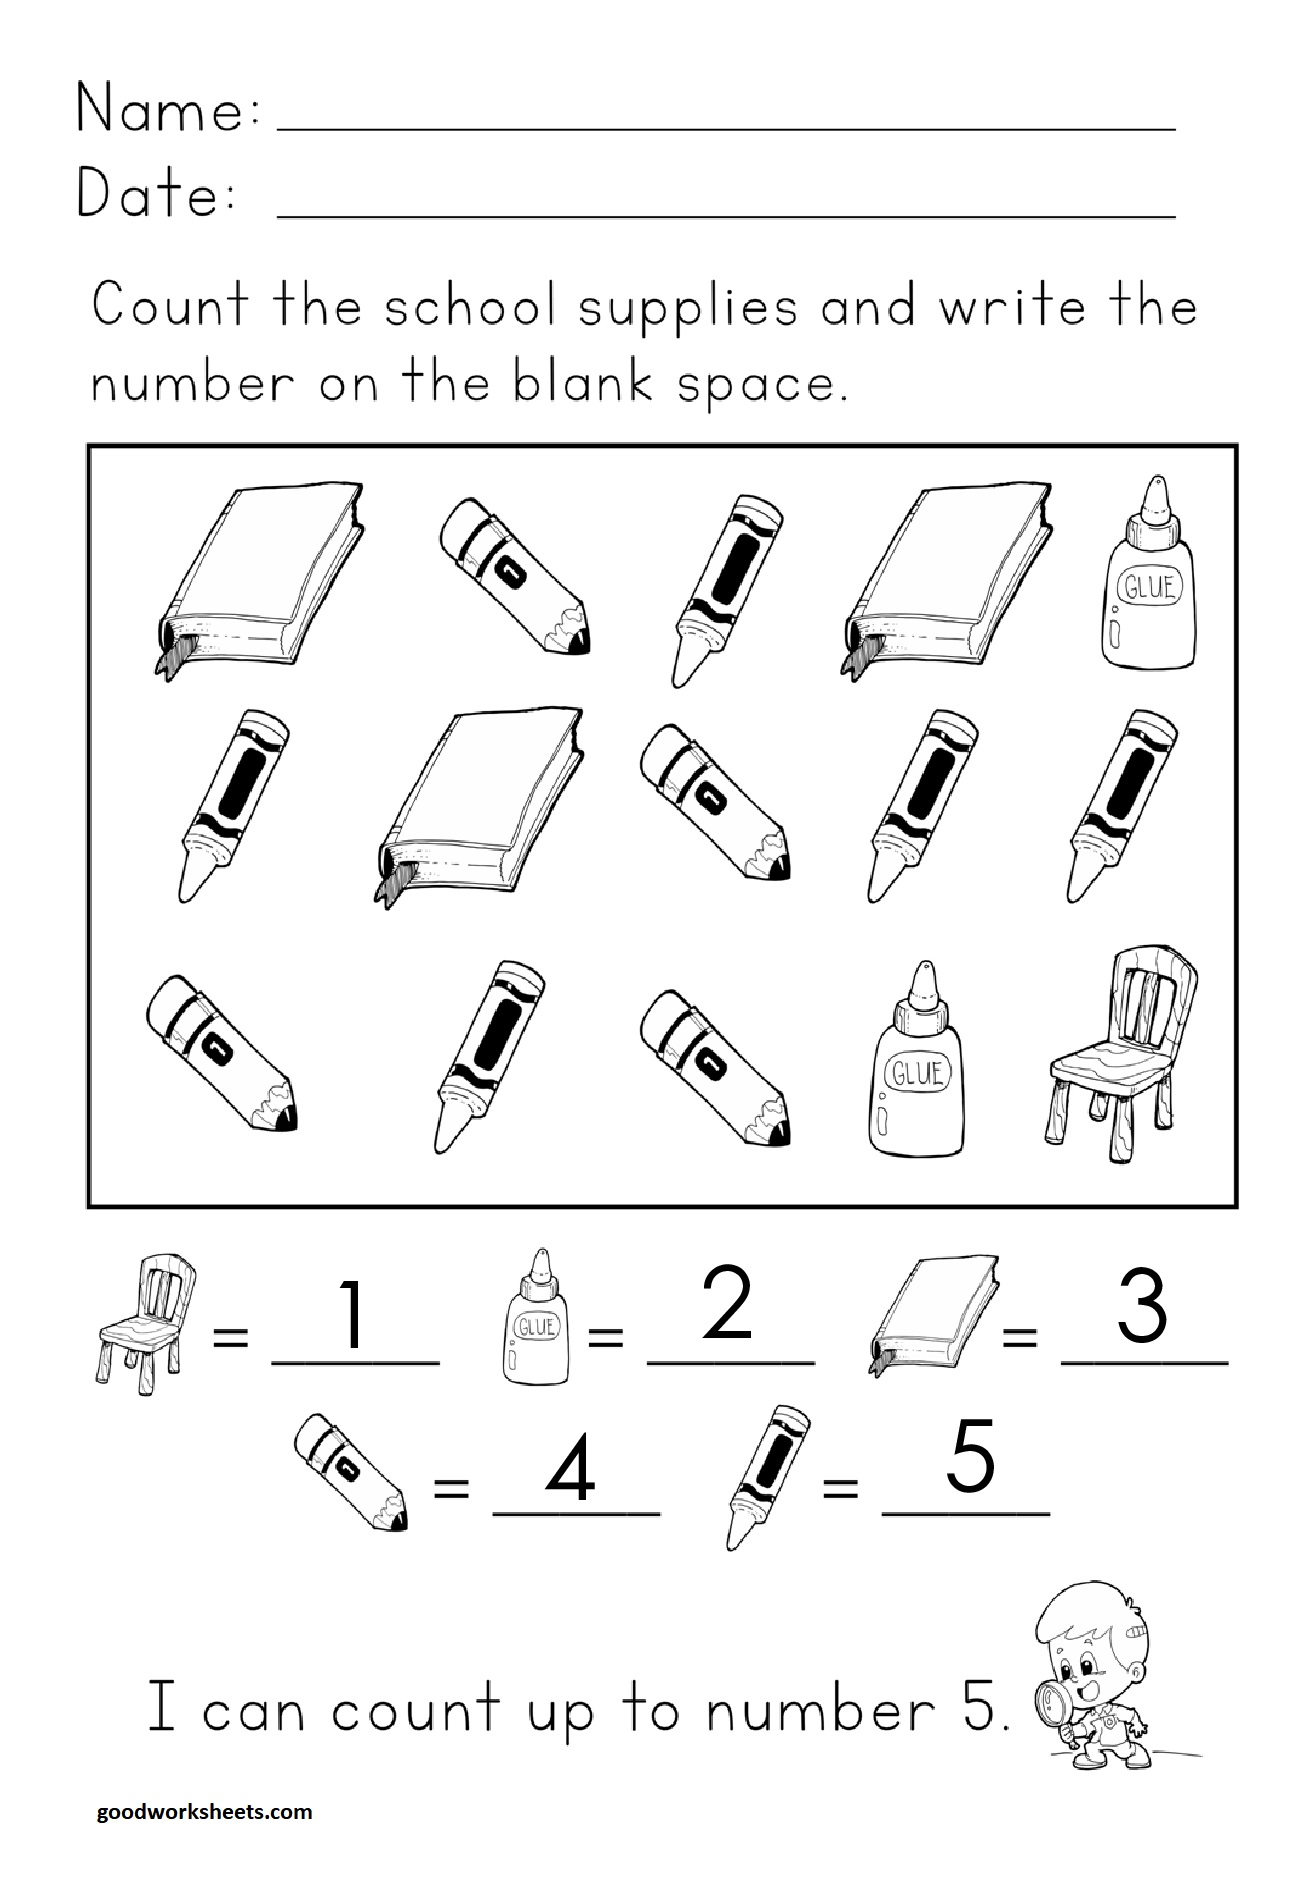 Number Concepts Count Up To 5 Worksheets Answer Key